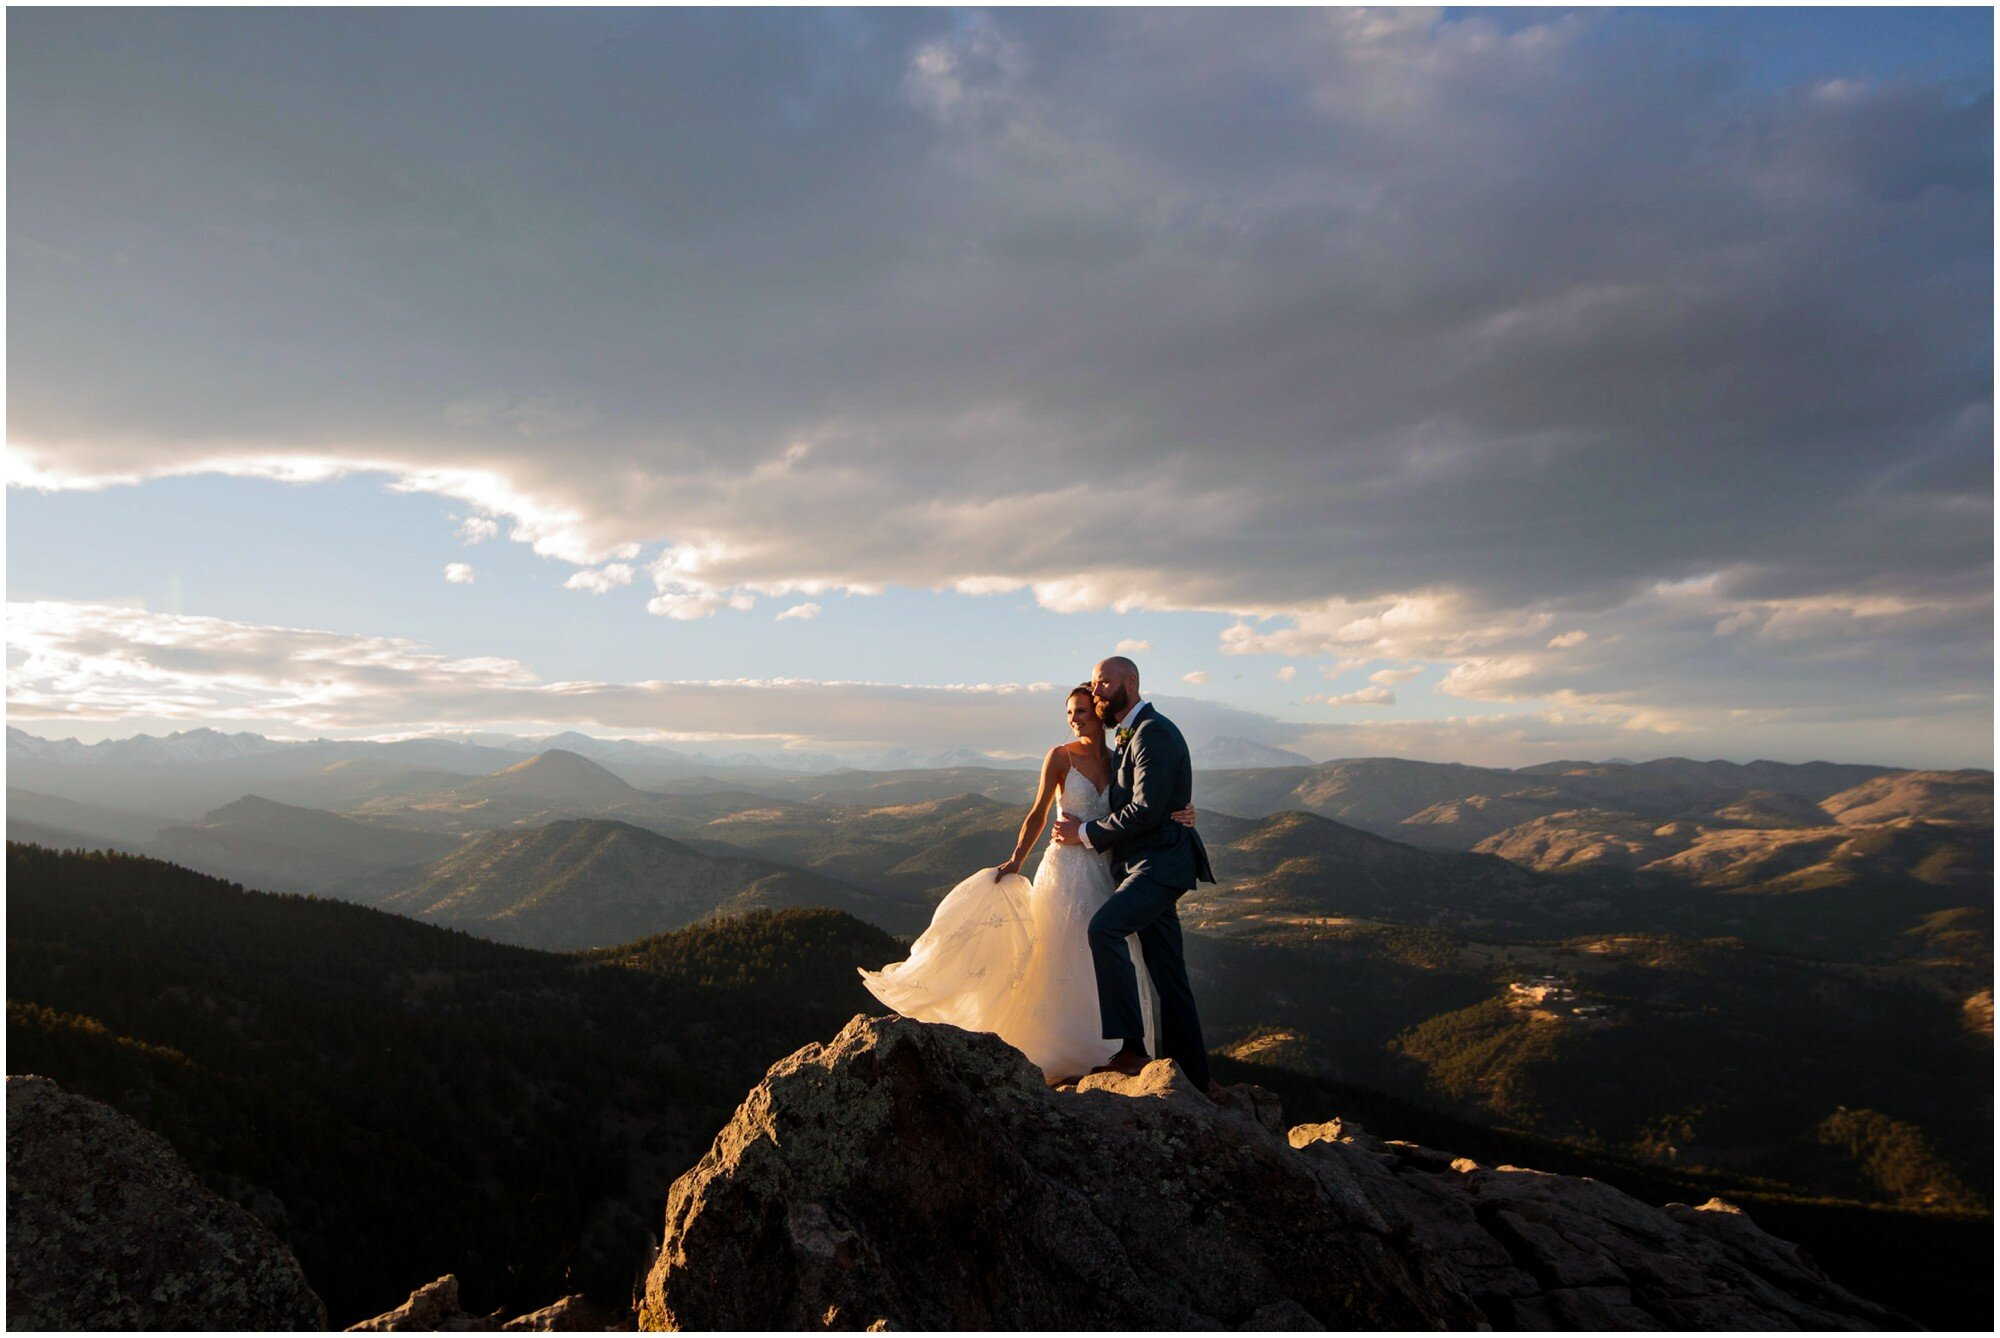 Lost Gulch Lookout boulder sunset wedding photo